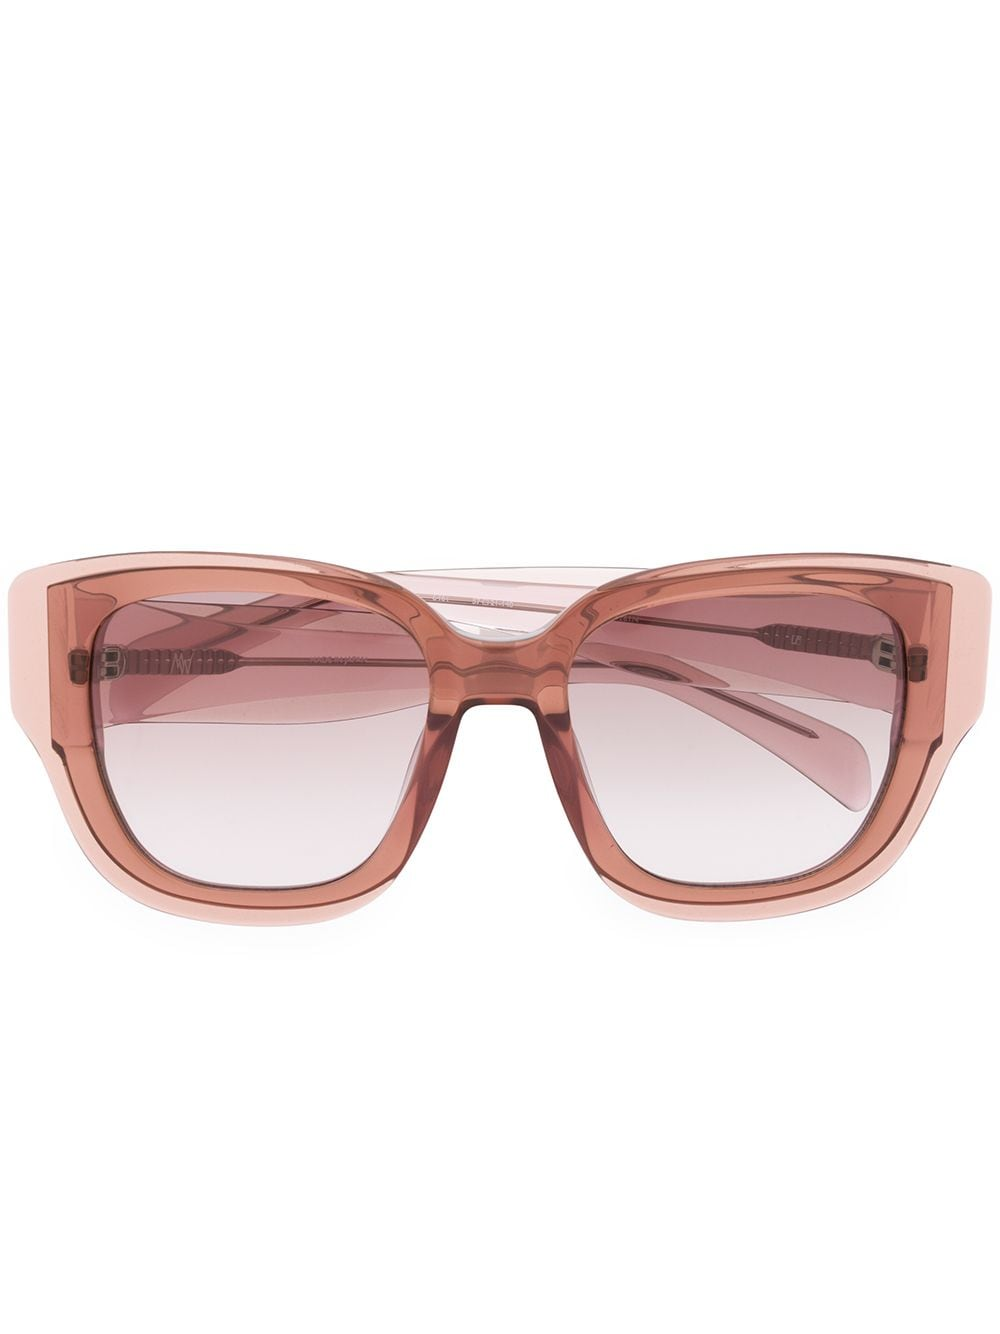 Linda Farrow Senna oversized sunglasses - PURPLE von Linda Farrow